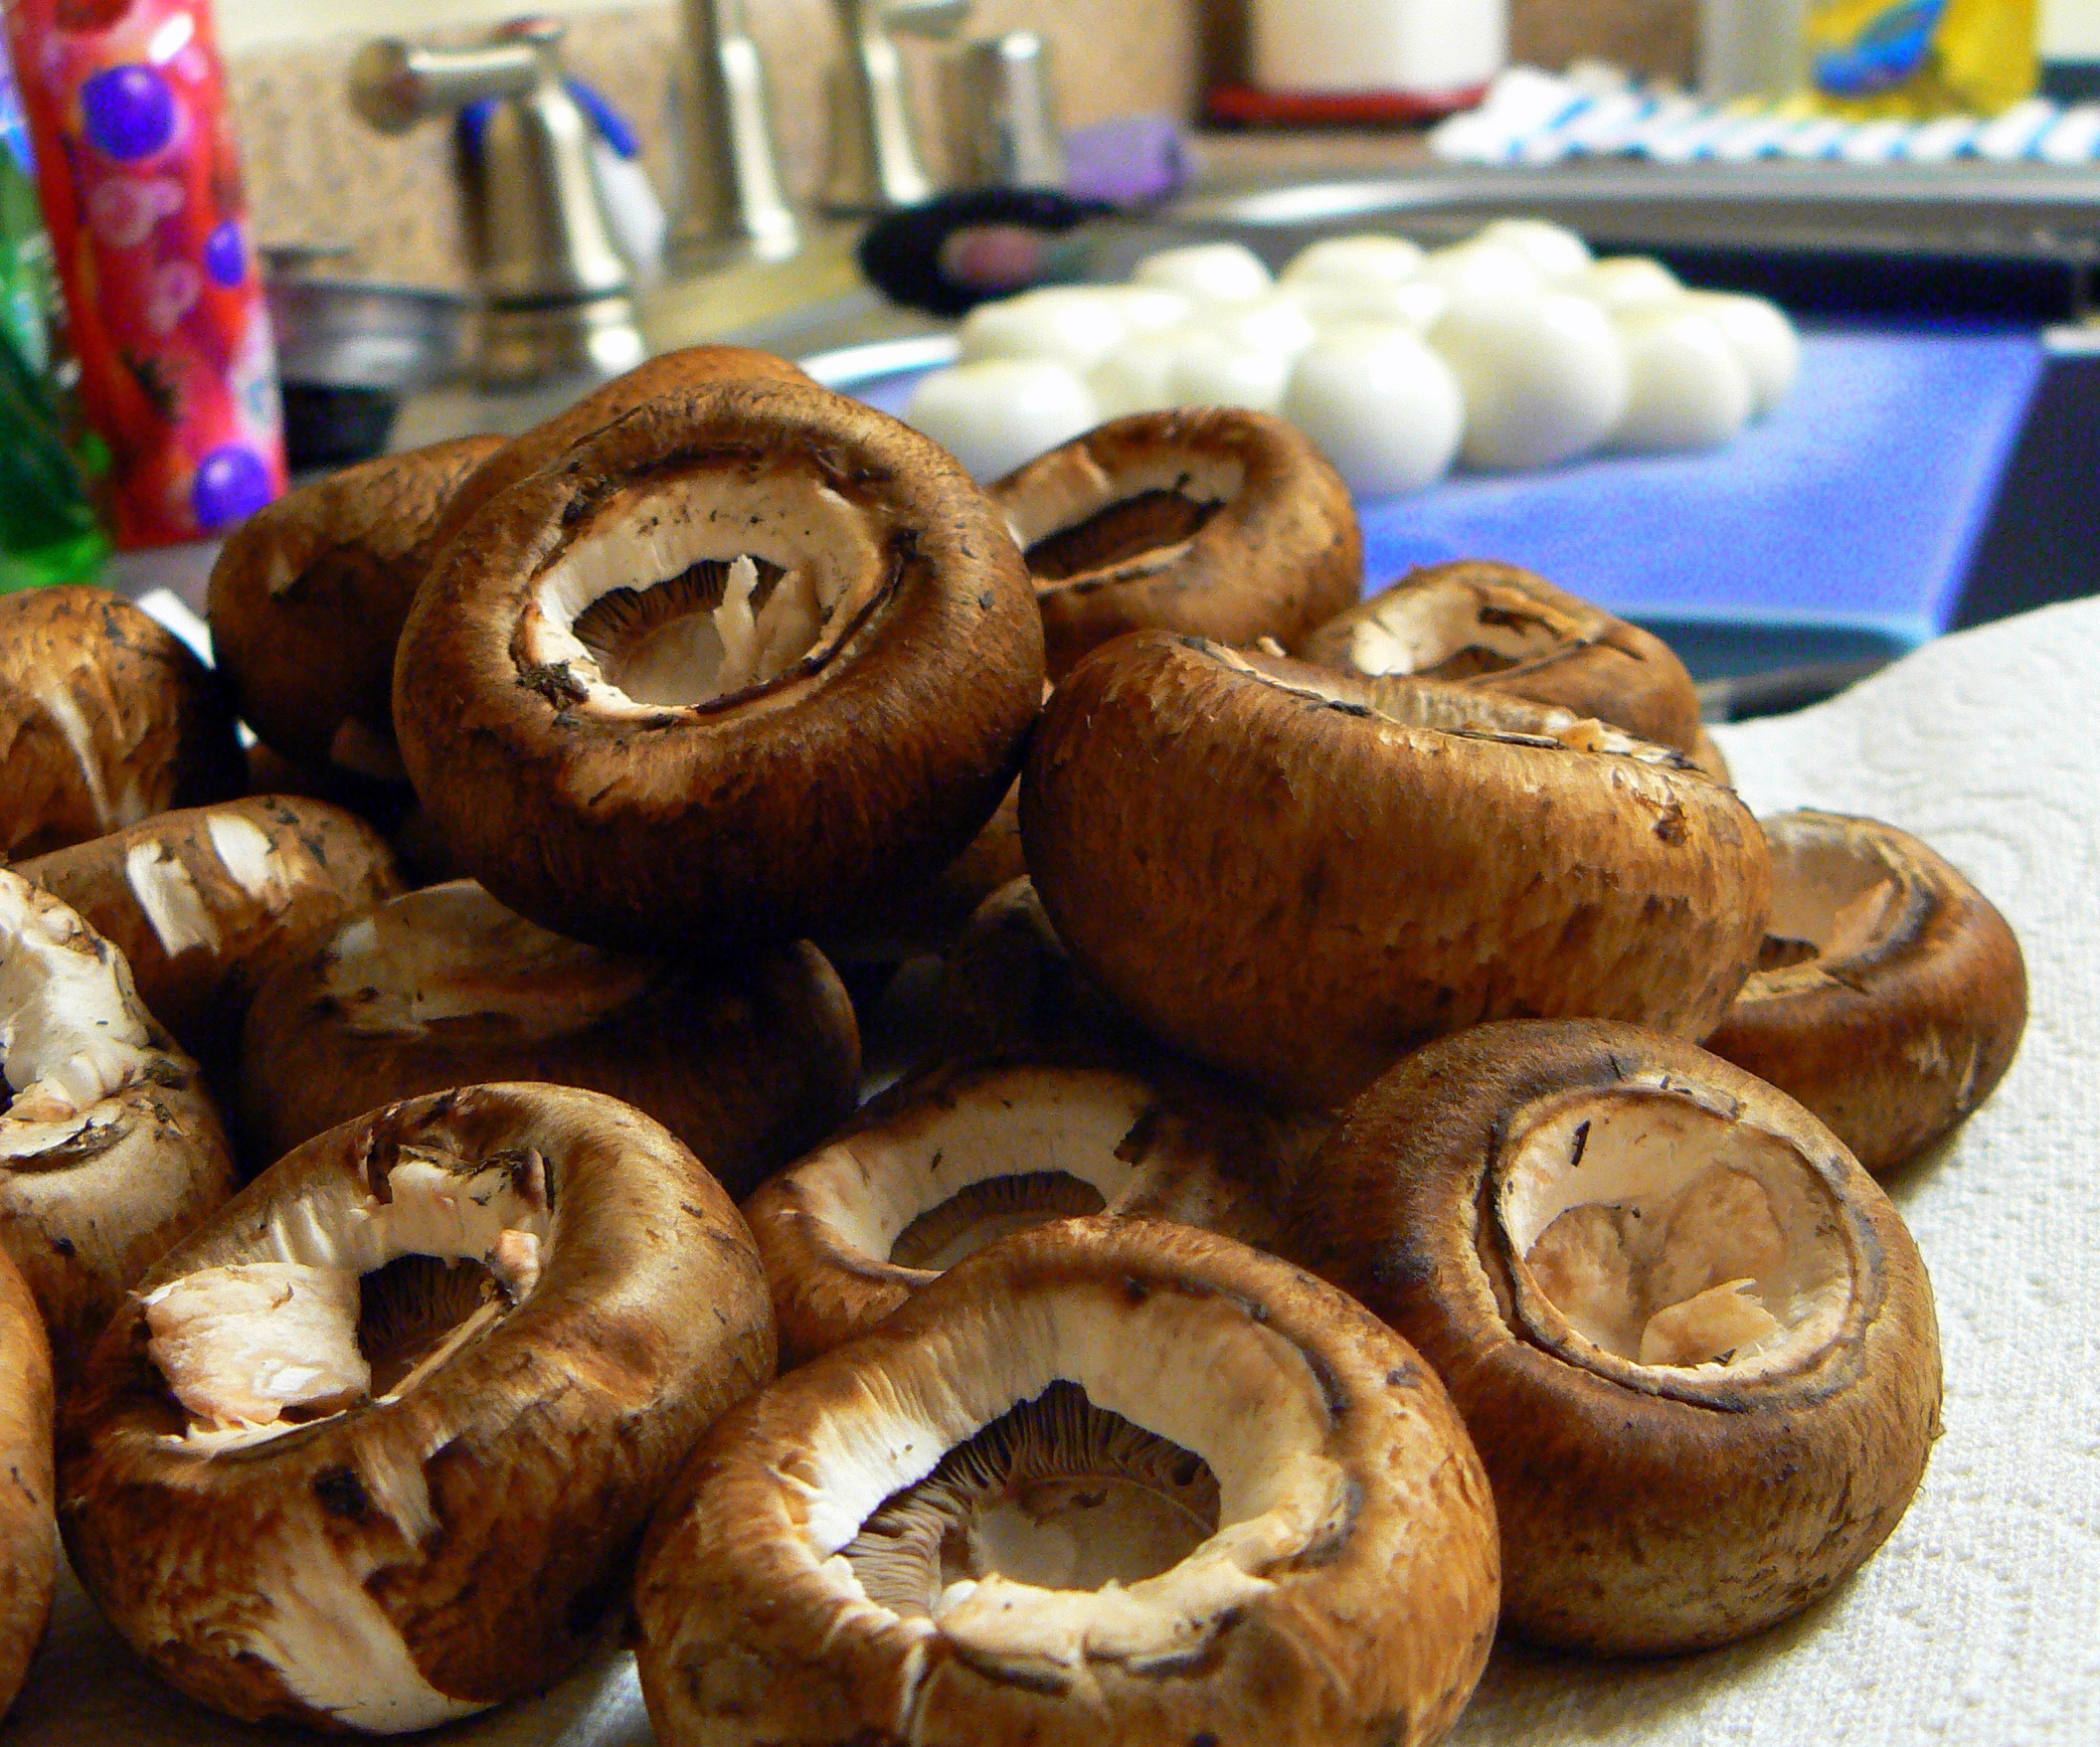 ... Crimini mushrooms) Horseradish Sour Cream, recipe follows, for garnish